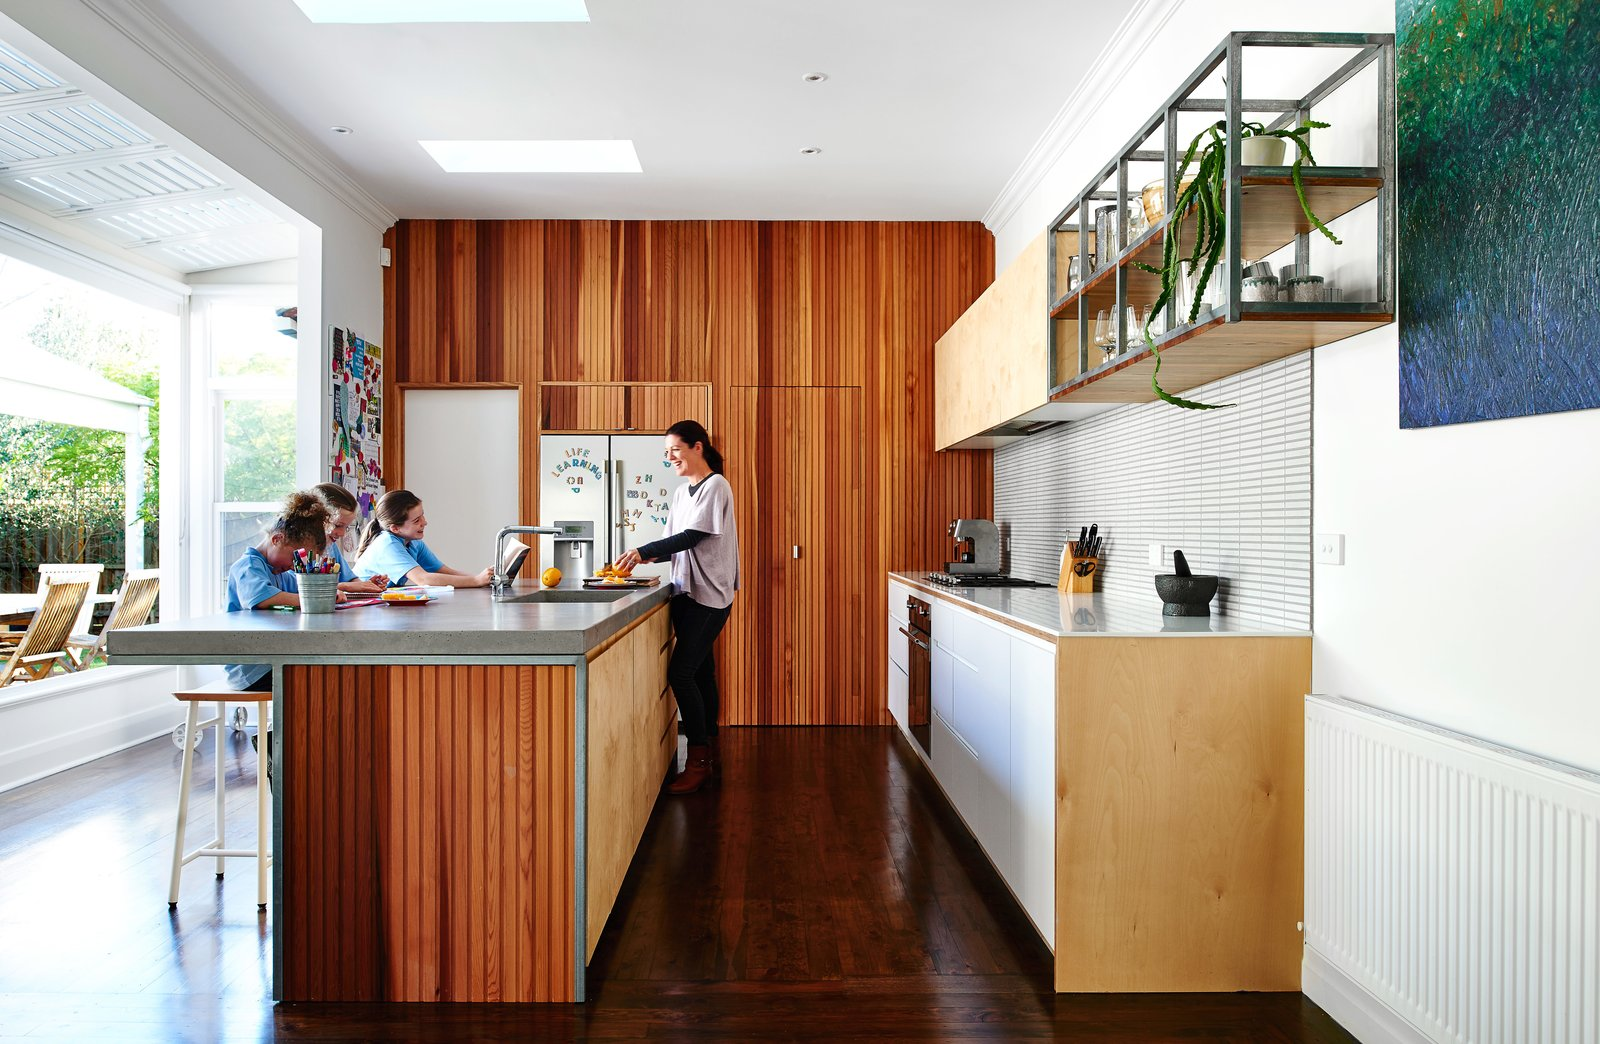 Kitchen, Refrigerator, Cooktops, Wood, Concrete, White, Dark Hardwood, Recessed, Wall Oven, Undermount, Ceramic Tile, and Range Hood Australian expats Carla and Paul Tucker tasked designer Dan Gayfer with expanding their Melbourne bungalow without adding any square footage. In the kitchen, a soft palette of wood, laminate, and tile created cohesion, impressive considering the clients didn't see a single finish, color, or material in person prior to their homecoming. The kitchen cabinets were clad in Russian birch plywood, and the countertops were concrete.  Kitchen Cooktops Undermount Wall Oven Dark Hardwood Photos from Skype Lets a Family Renovate Their Kitchen 3,700 Miles Away